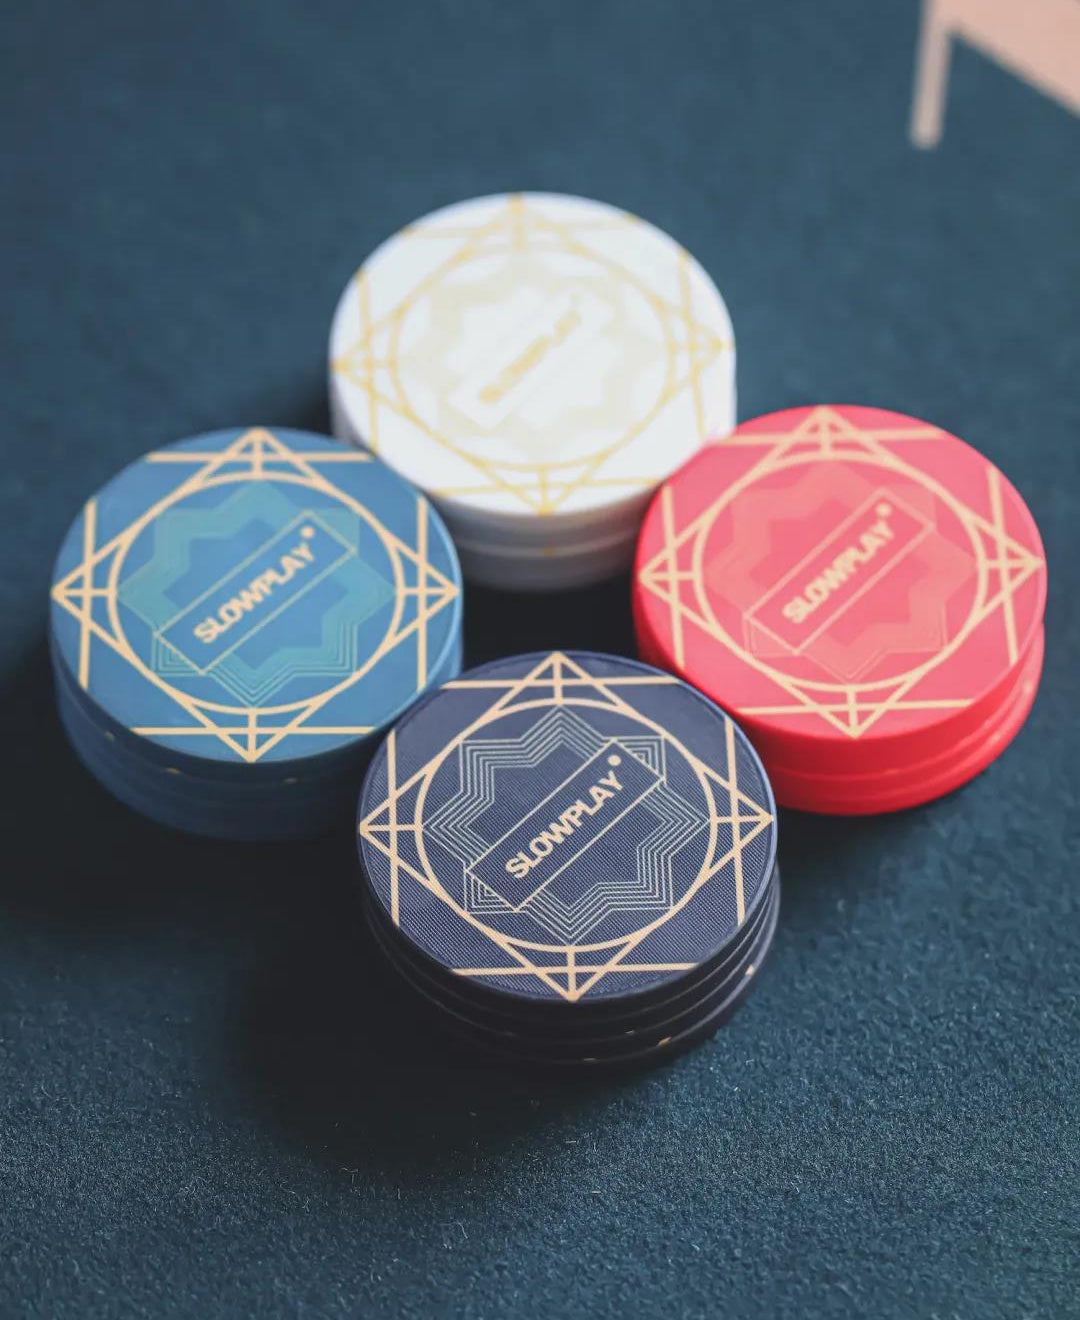 Beautiful Graphic Design Inspired by Art Deco as Seen on SLOWPLAY's ACES Poker Chips